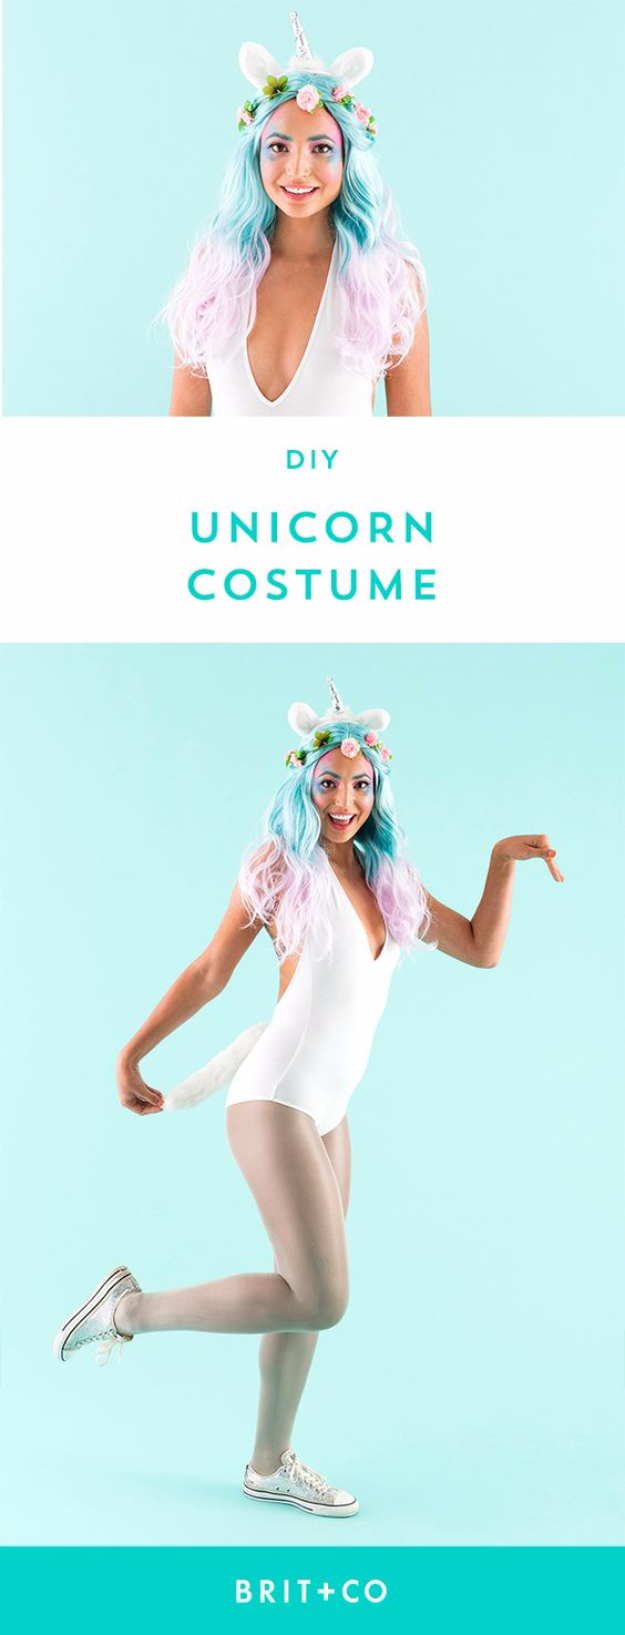 30 halloween costumes that will win the contest every time best diy halloween costume ideas diy unicorn costume do it yourself costumes for women solutioingenieria Gallery